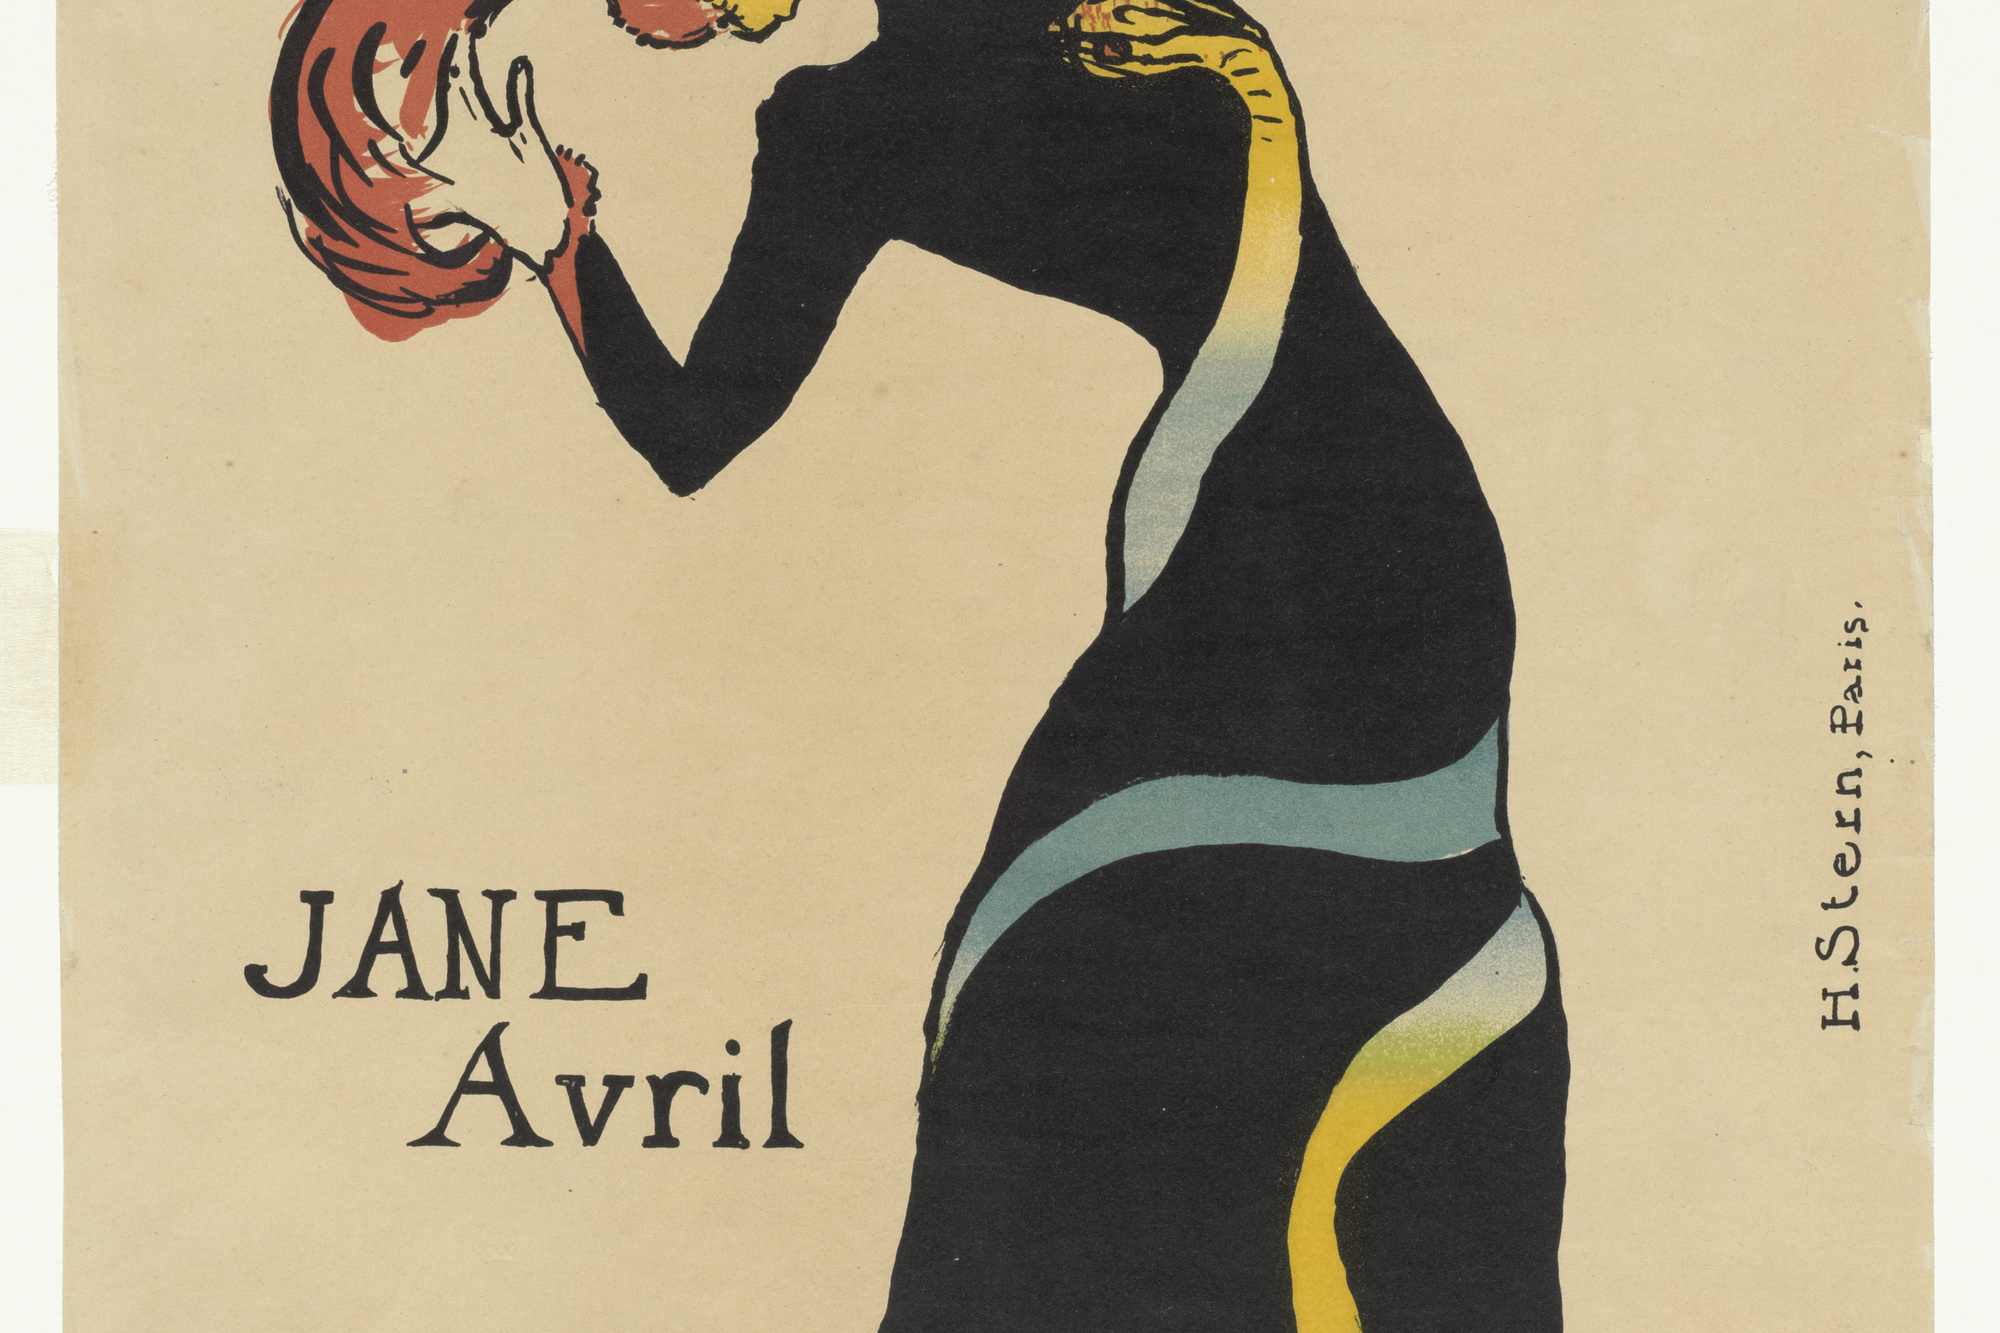 Henri de Toulouse-Lautrec. Jane Avril. 1899. Lithograph, composition: 22 1/16 × 14 1/16″ (56 × 35.7 cm); sheet: 22 1/16 × 15″ (56 × 38.1 cm). Publisher: Jane Avril, Paris. Printer: Henri Stern, Paris. Edition: 25. Gift of Abby Aldrich Rockefeller